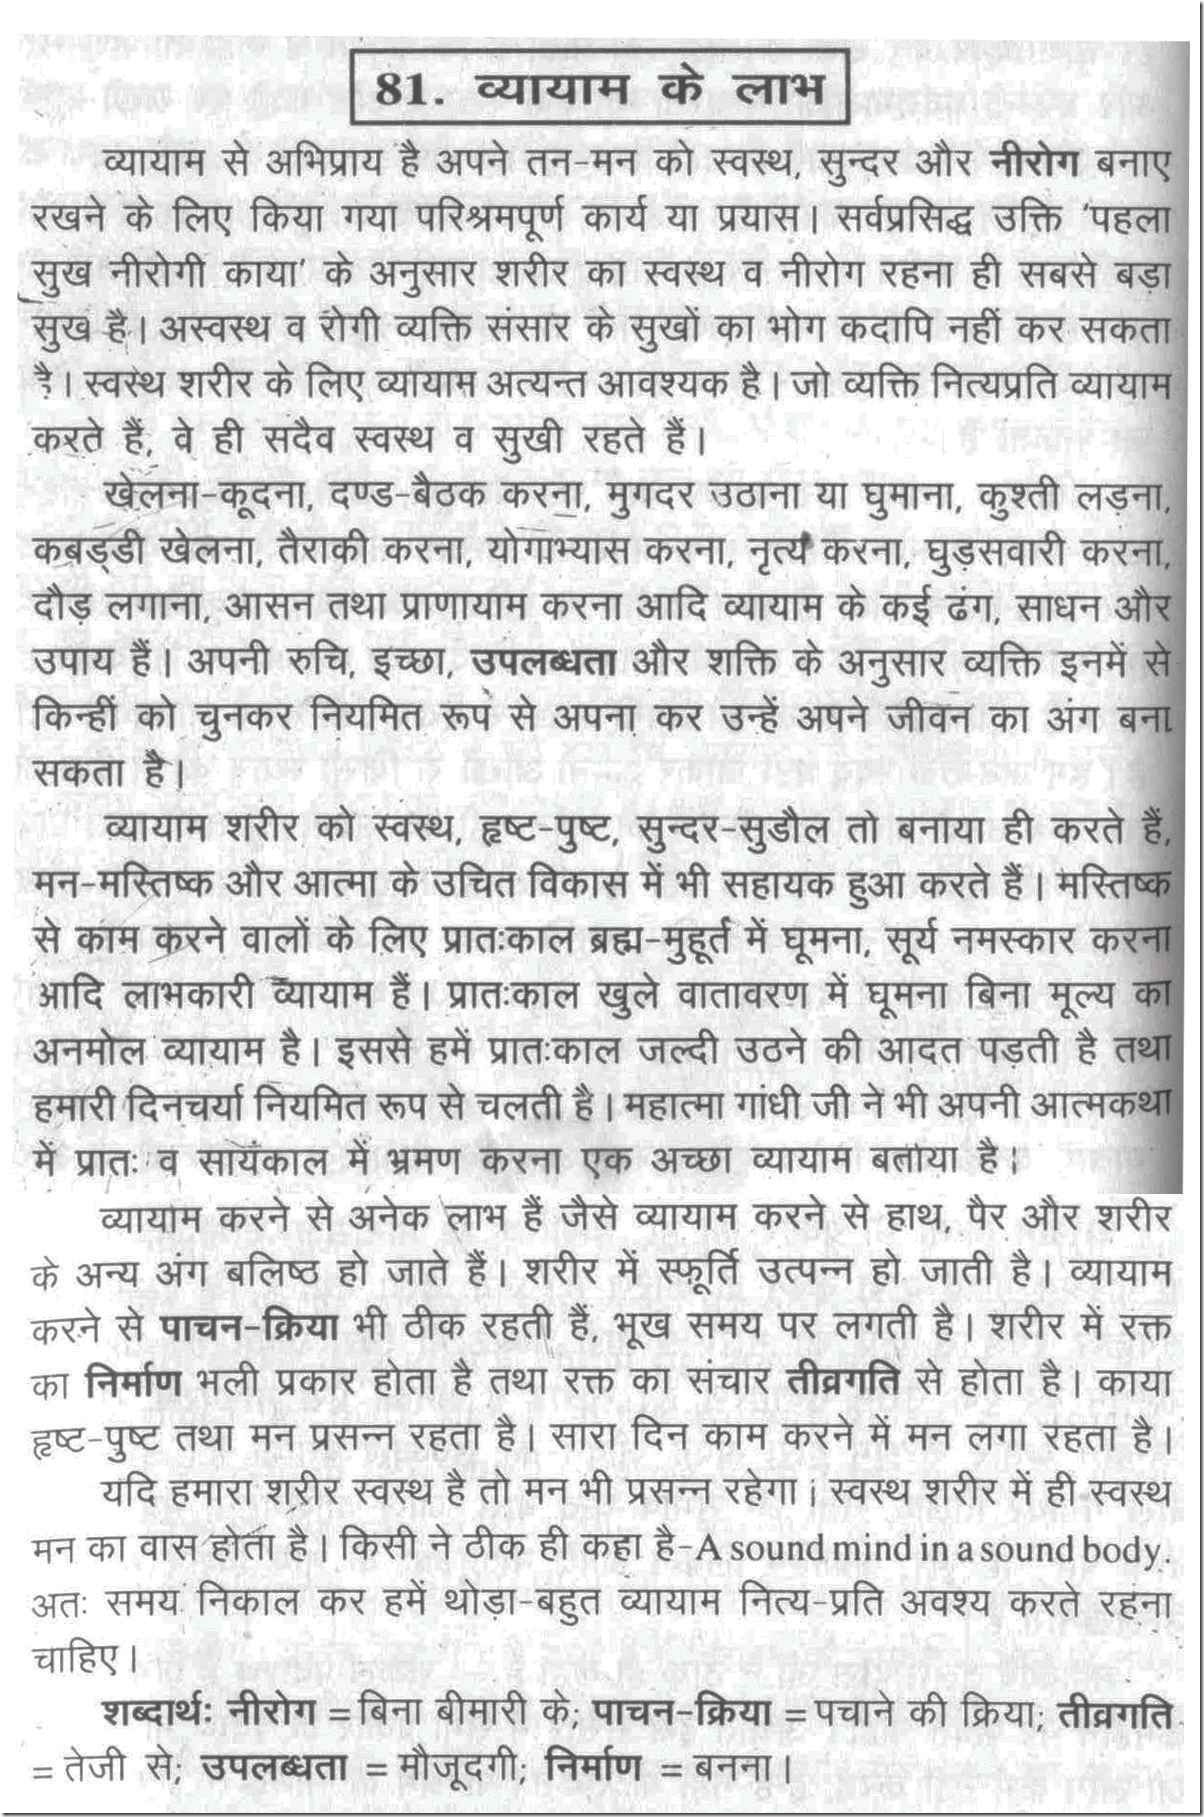 011 2563478896 Essay On Health And Fitness Through Food Good Habits In Hindi Exceptional Reading Habit Wikipedia Full